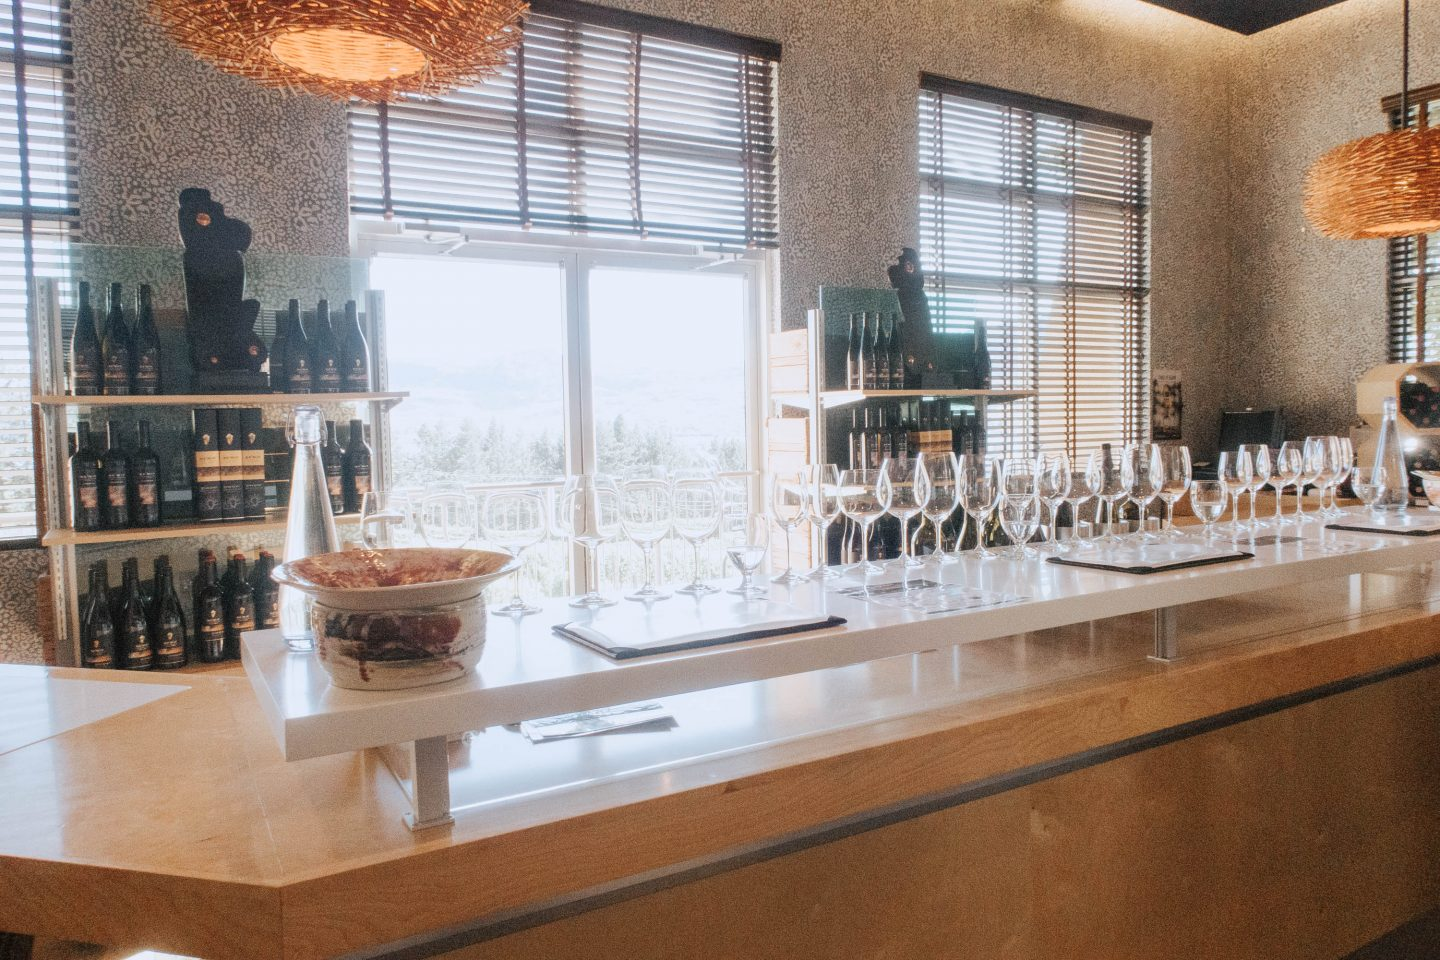 The indoor wine tasting room at NK'MIP Cellars and Sunset Lounge